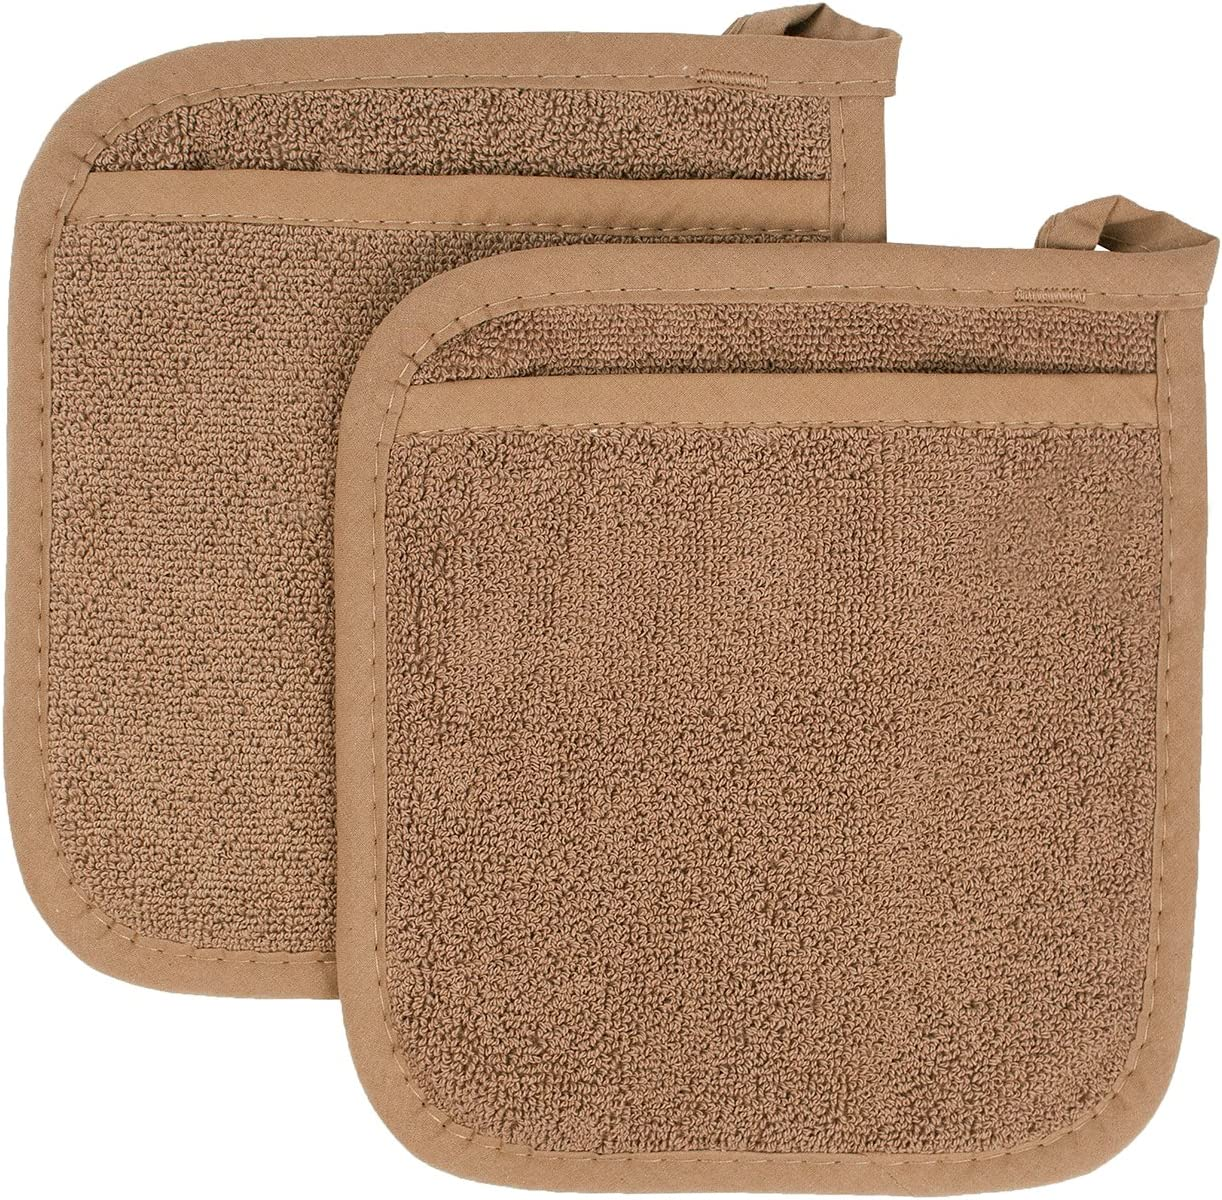 Ritz Royale Collection 100% Cotton Terry Cloth Pocket Mitt Set, Dual-Function Hot Pad/Pot Holder, 2-Piece, Mocha Brown